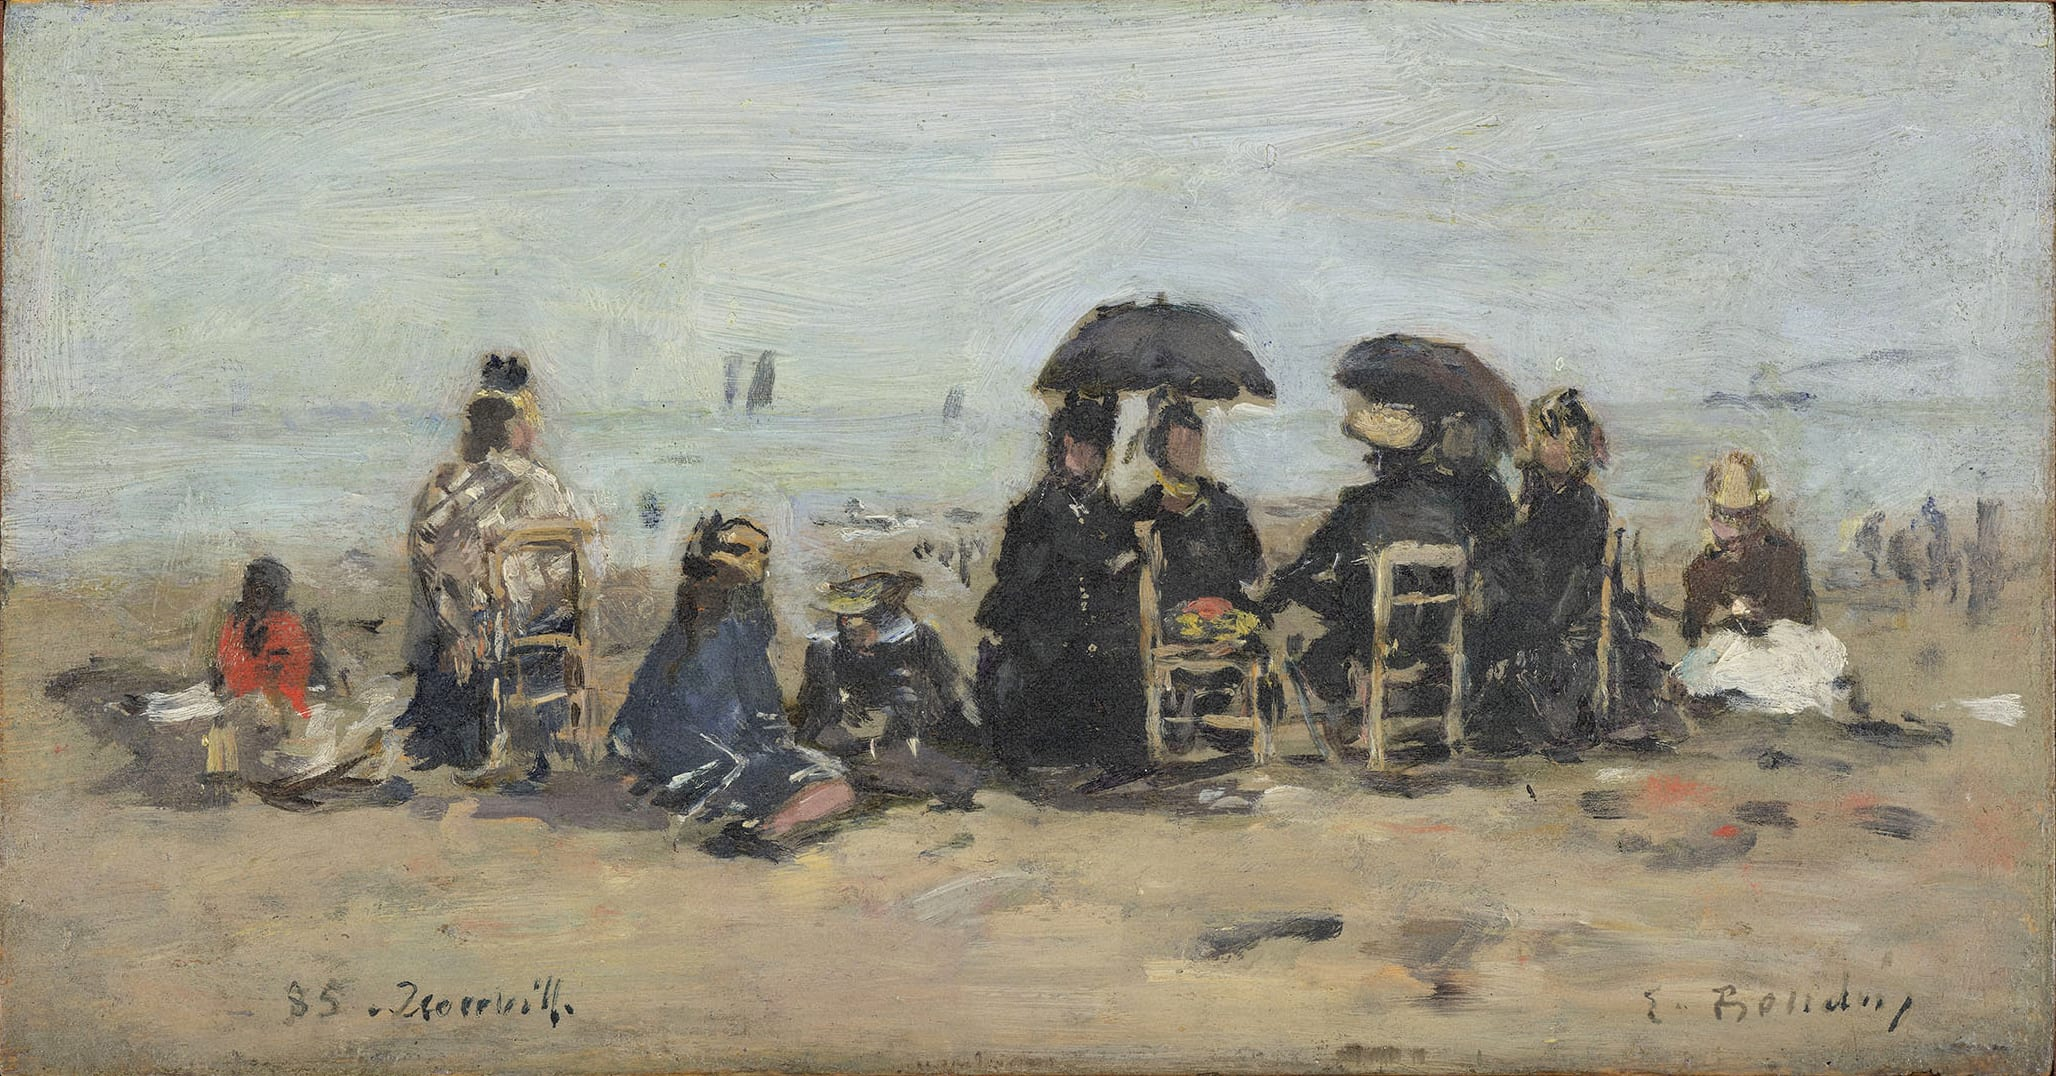 "<span class=""link fancybox-details-link""><a href=""/exhibitions/16/works/artworks_standalone9380/"">View Detail Page</a></span><div class=""signed_and_dated"">Signed lower right ""E.Boudin"" and inscribed lower left ""85 Trouville""</div>